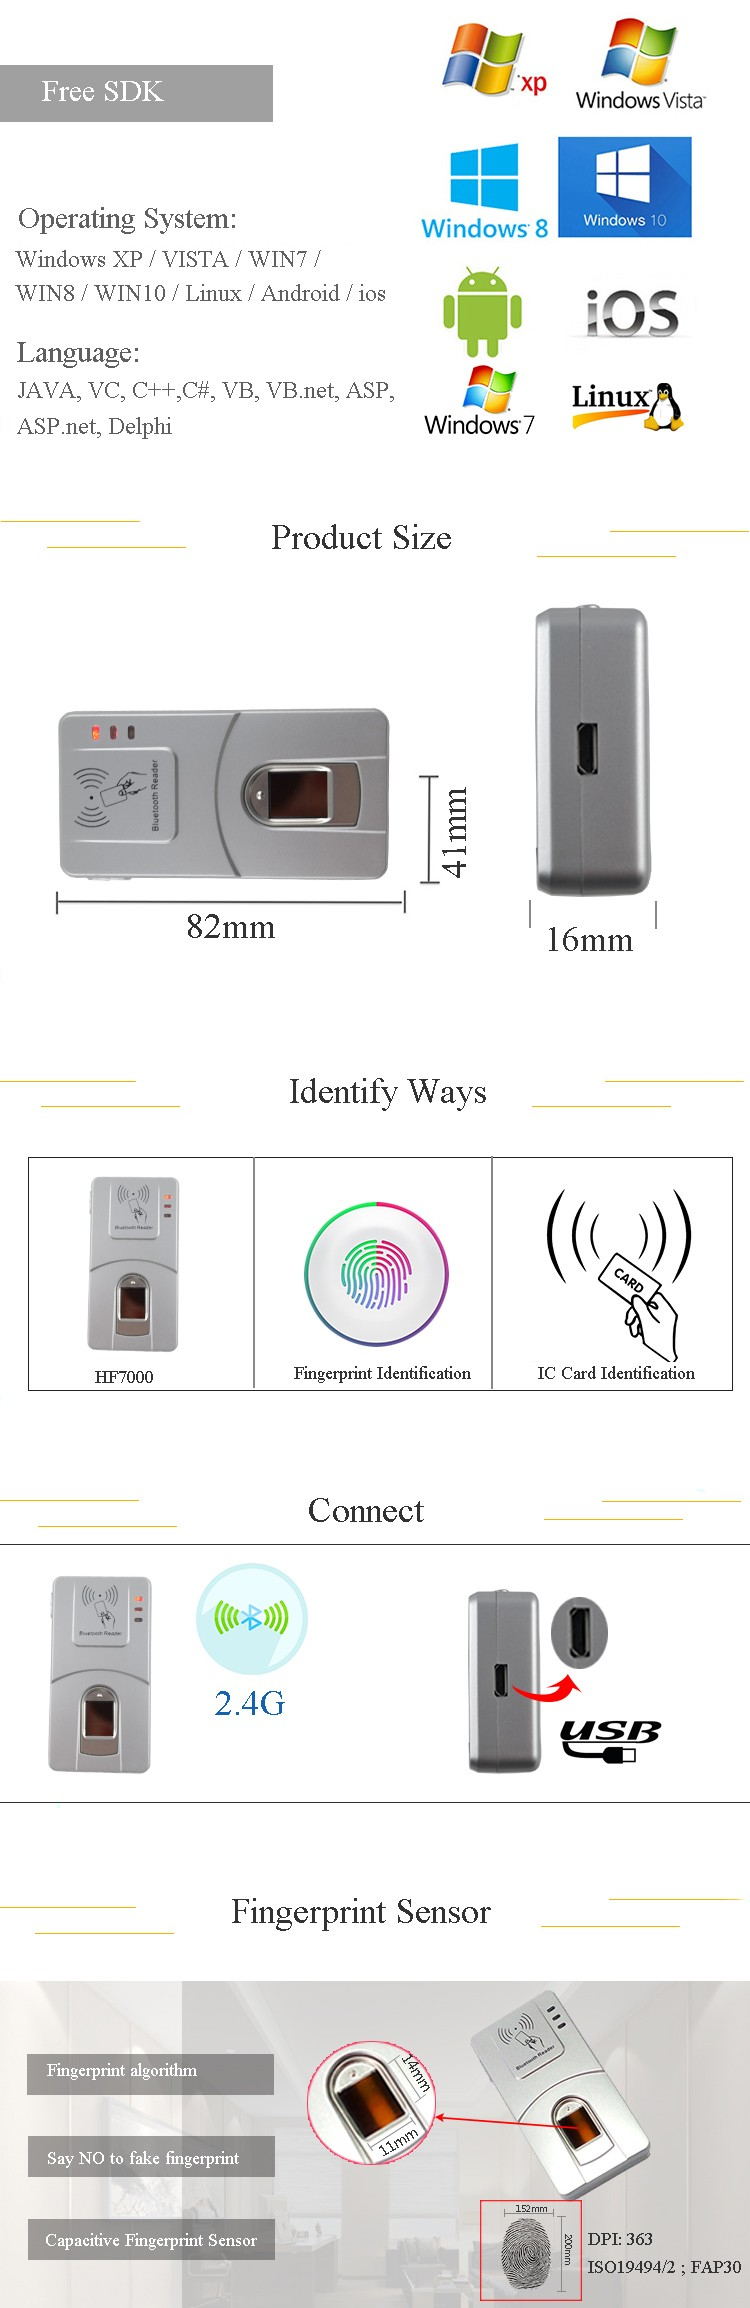 HF7000 IOS and Linux Fingerprint Scanner